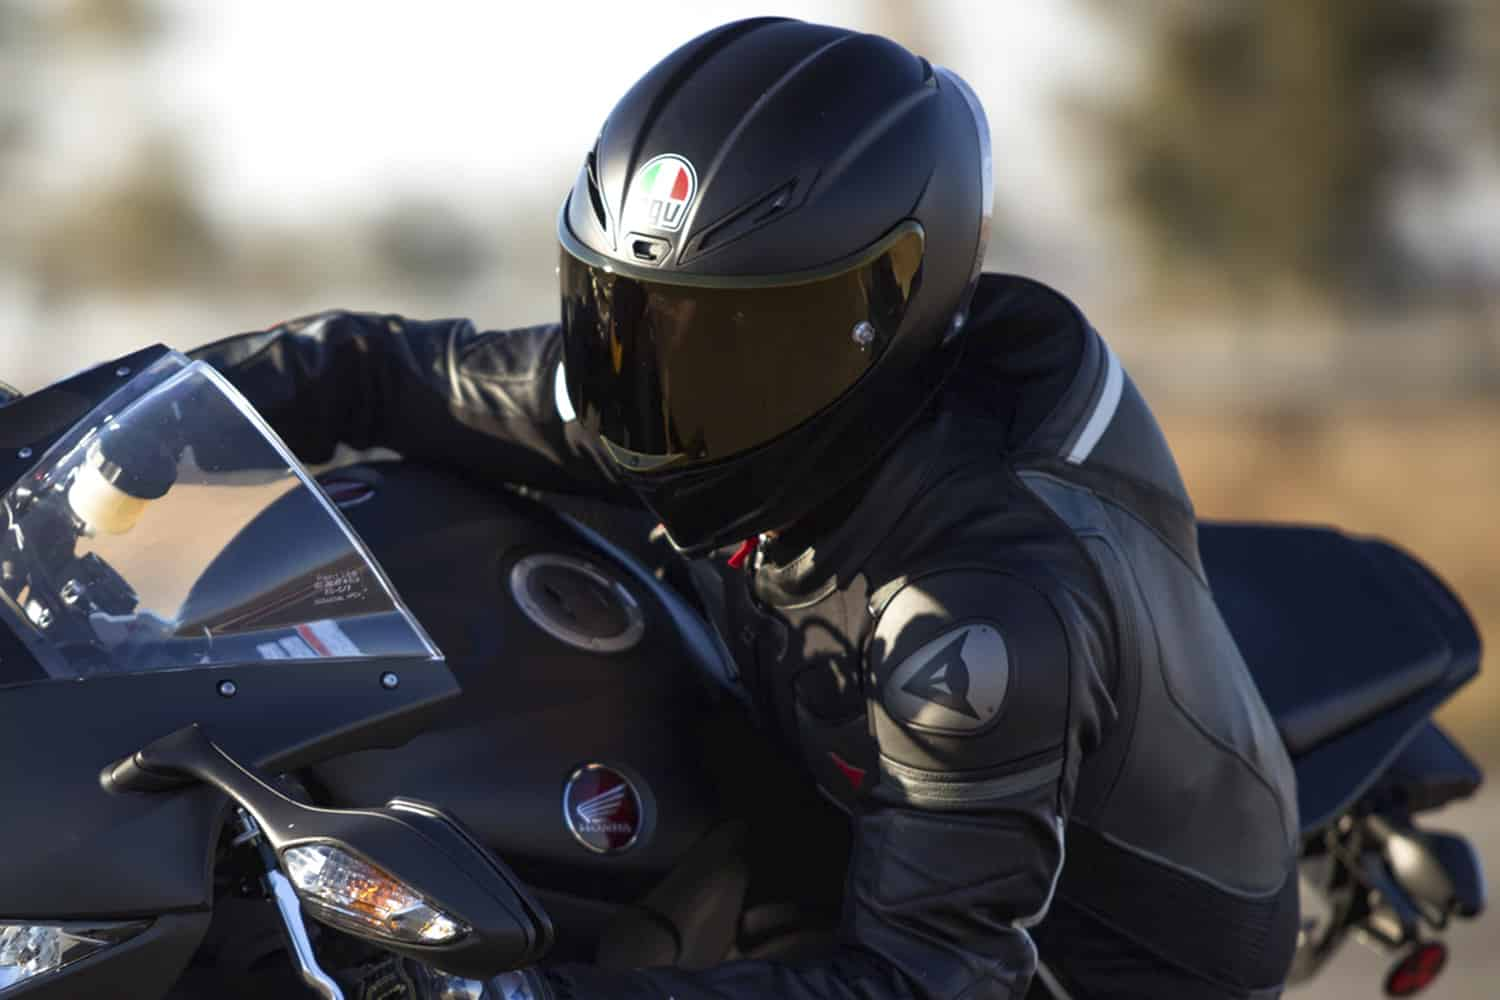 23b58fd3 Top 12 Best Full Face Motorcycle Helmets in 2019 – Review & Buying Guide.  Finding the best full face motorcycle helmet ...